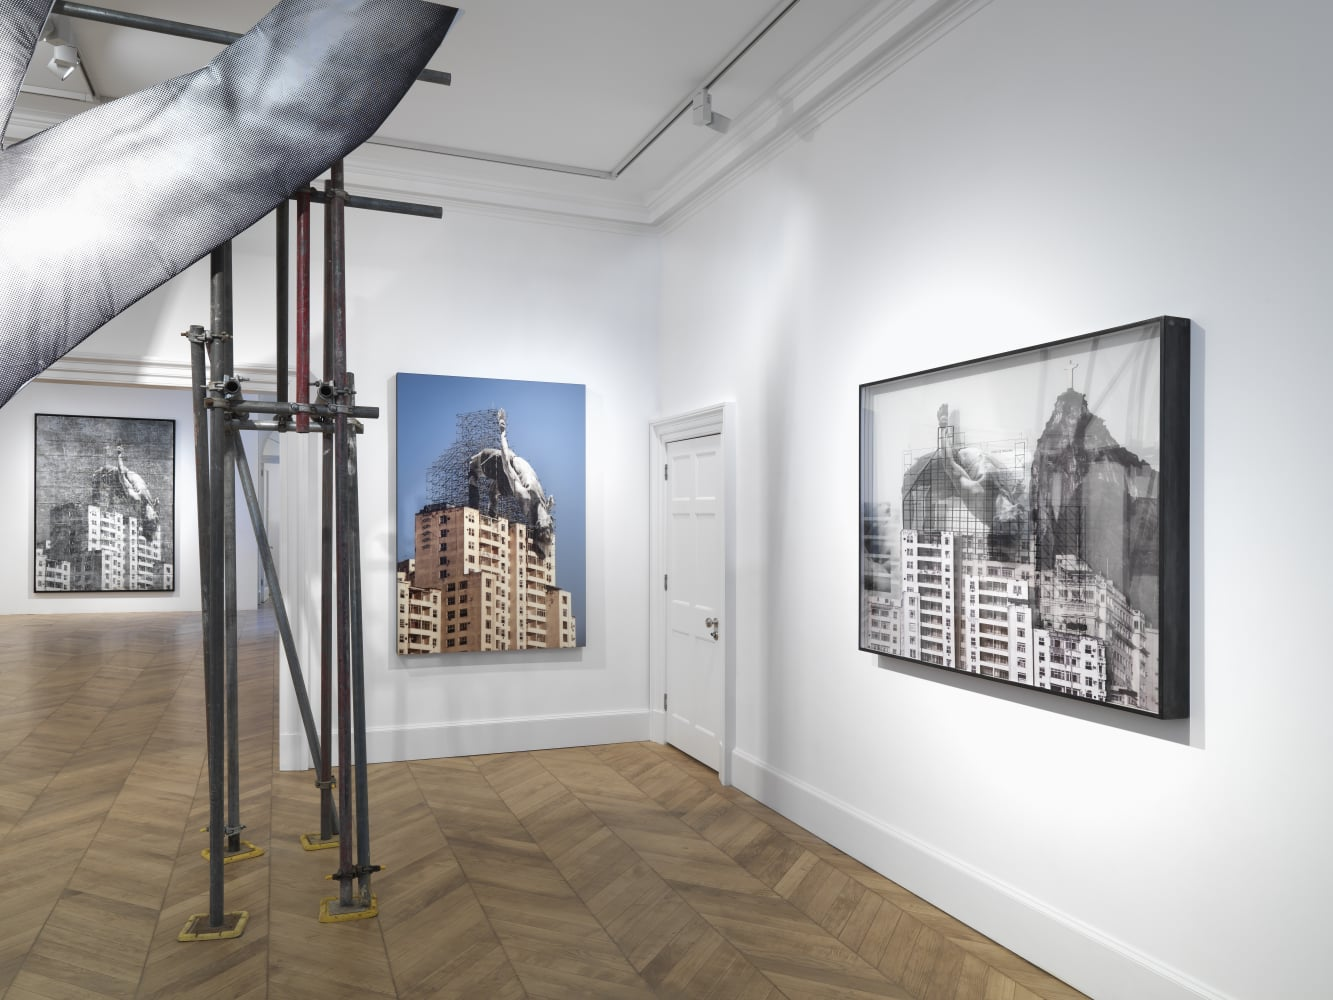 Jr Opens Lazinc S New Mayfair Gallery With His Exhibition Giants Body Of Work